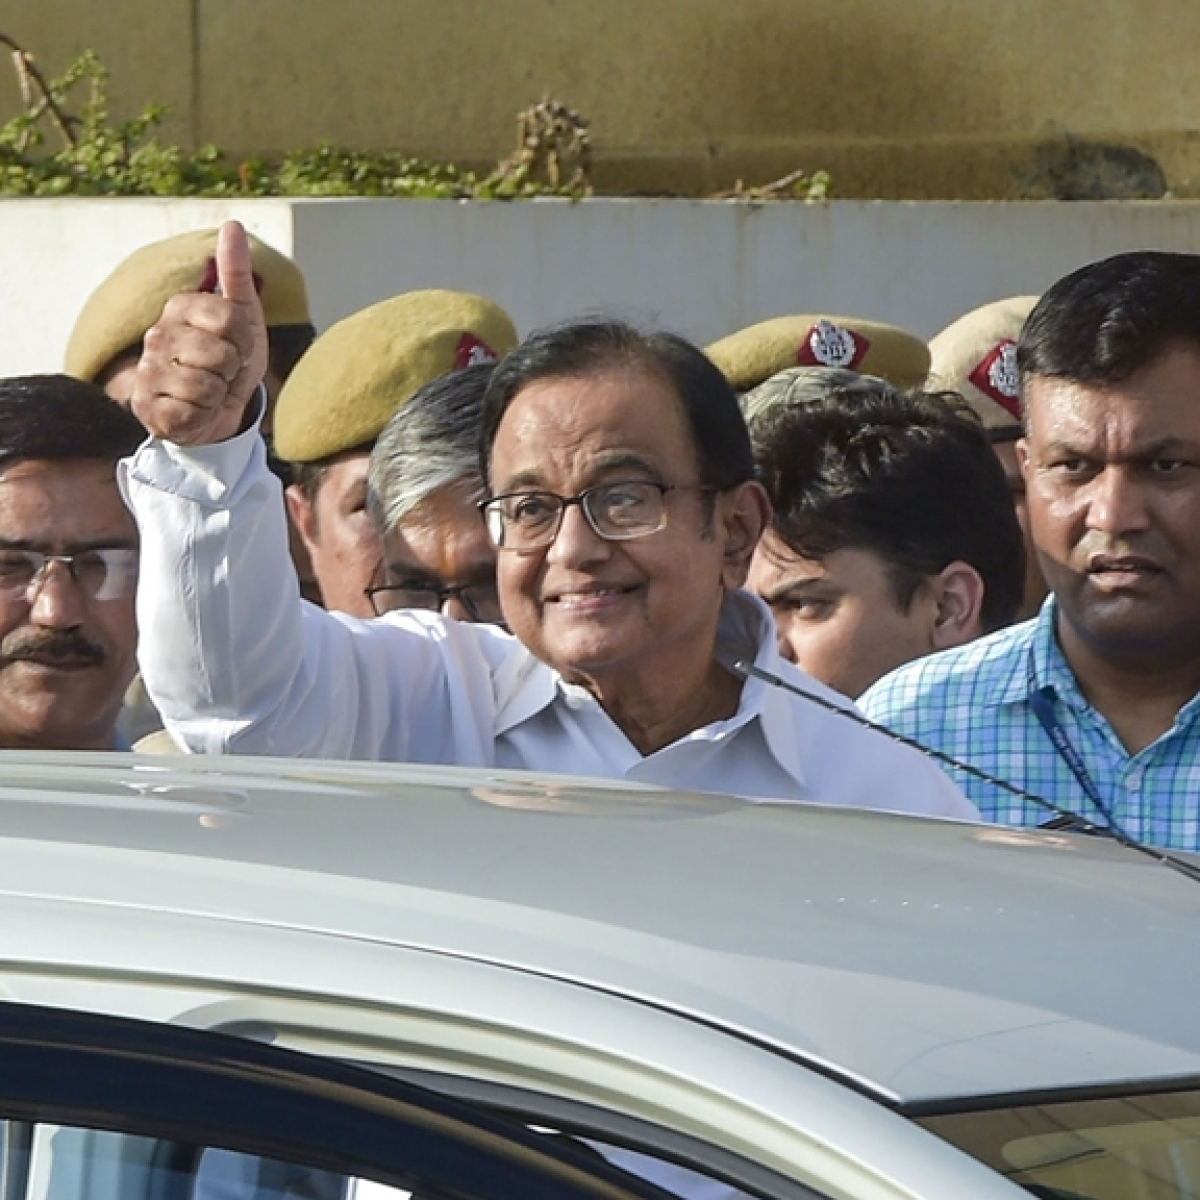 ED wants arrest only to humiliate me: Chidambaram to SC; family alleges motive by govt to demonise him